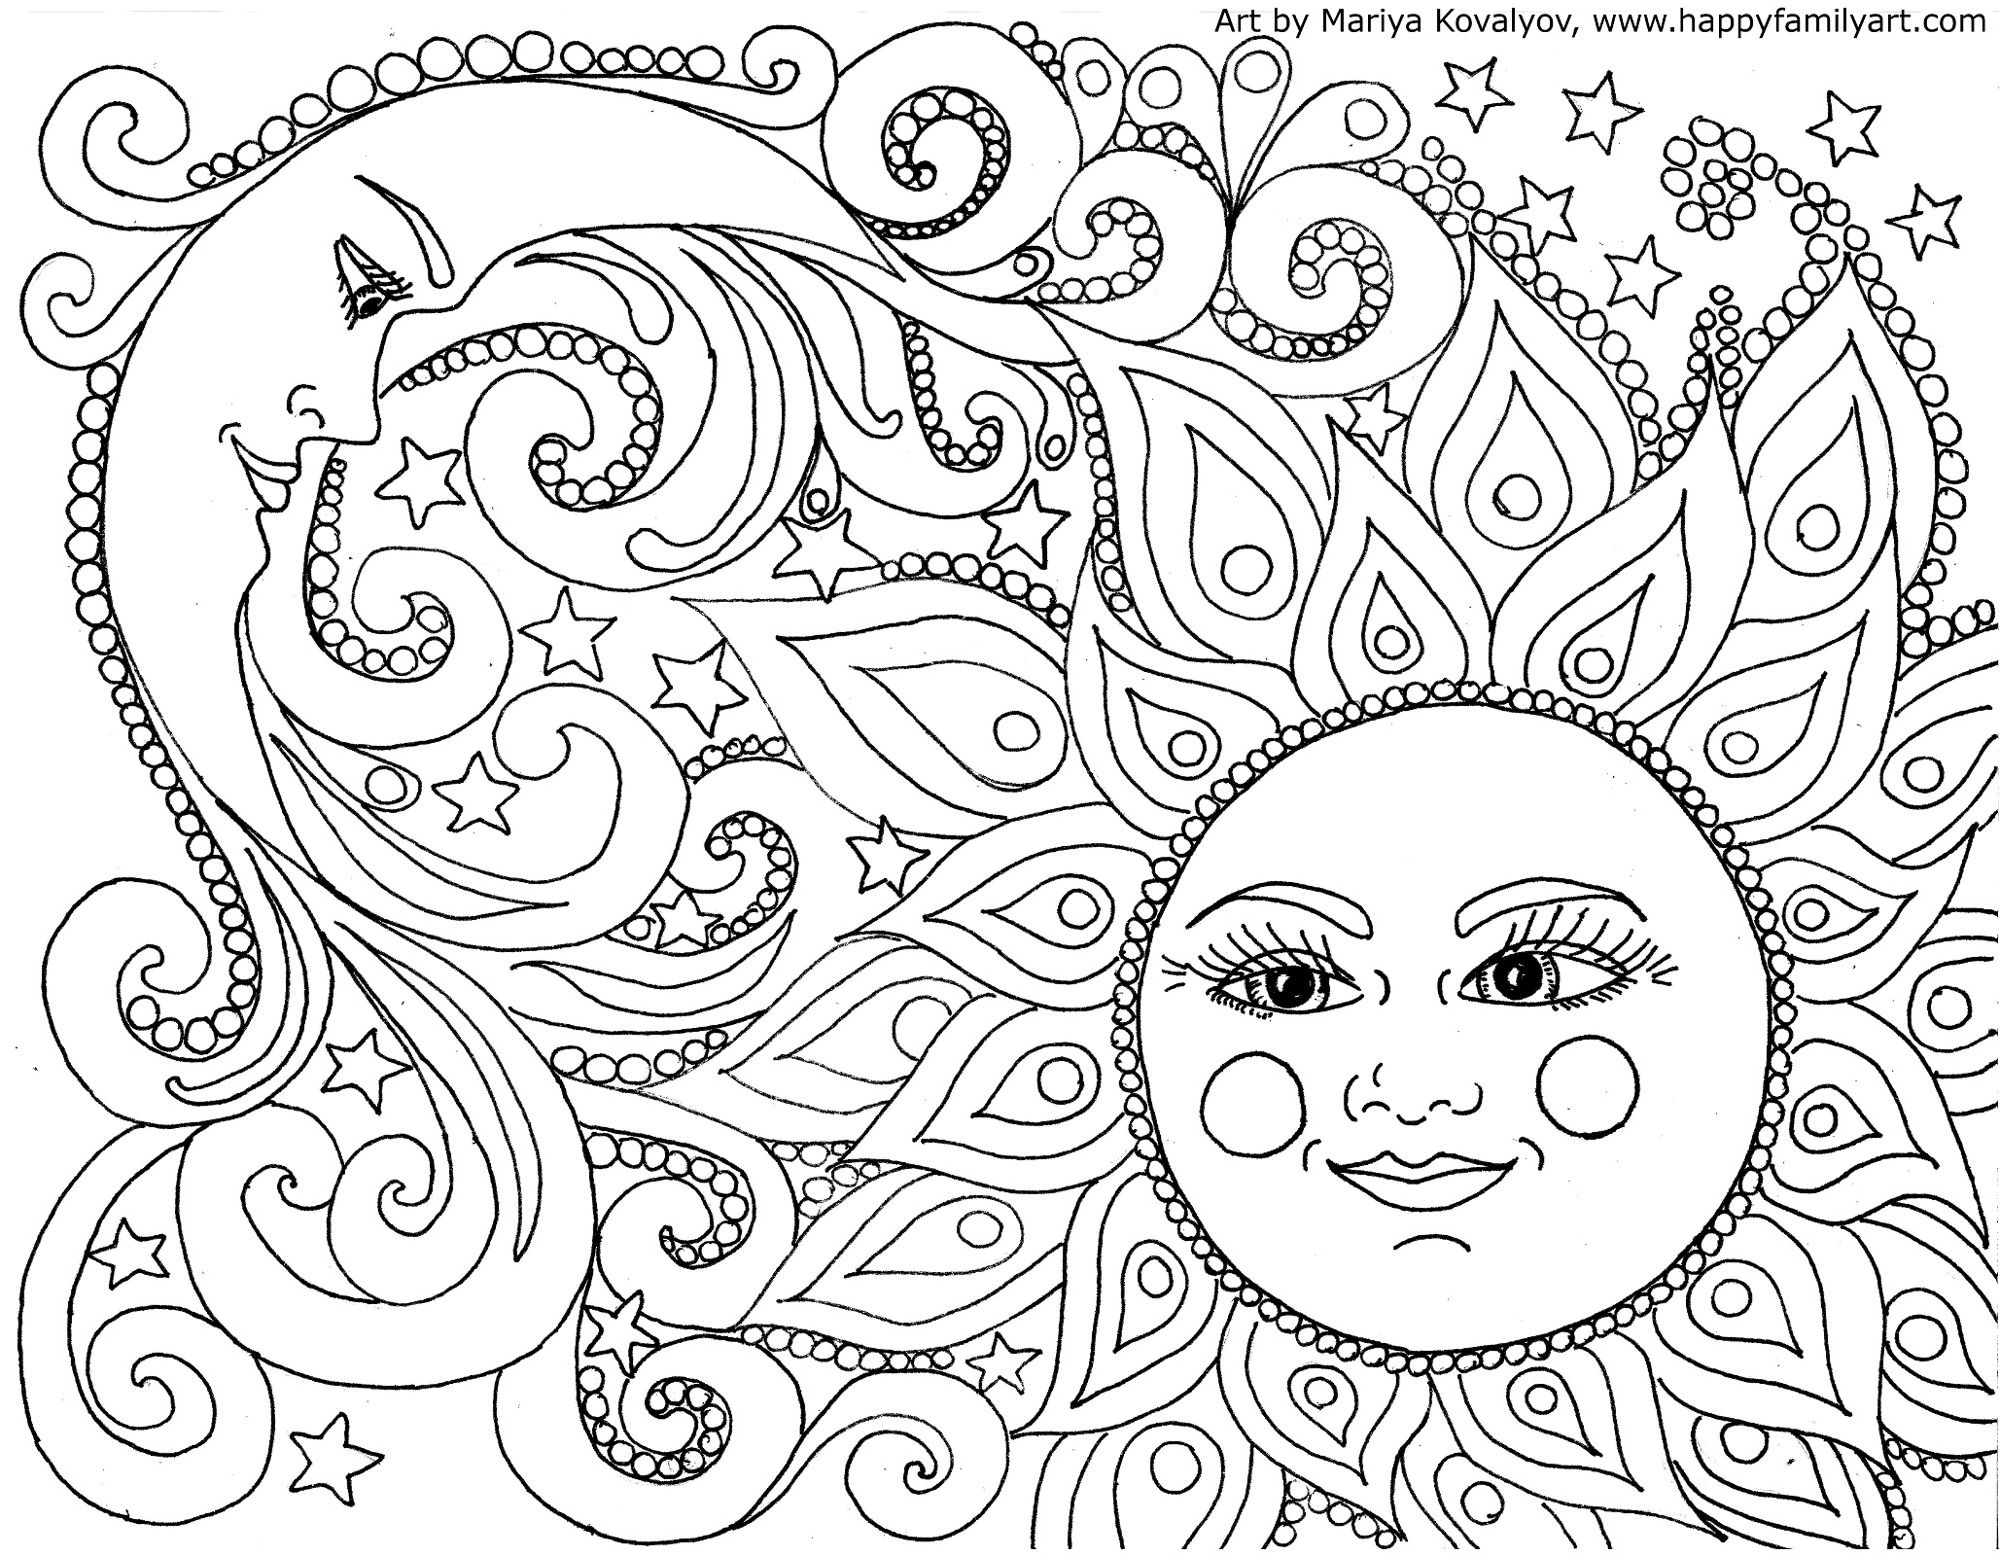 Coloring pages of spring things - 25 Best Ideas About Coloring Pages On Pinterest Adult Coloring Pages Colouring Sheets For Adults And Free Coloring Pages